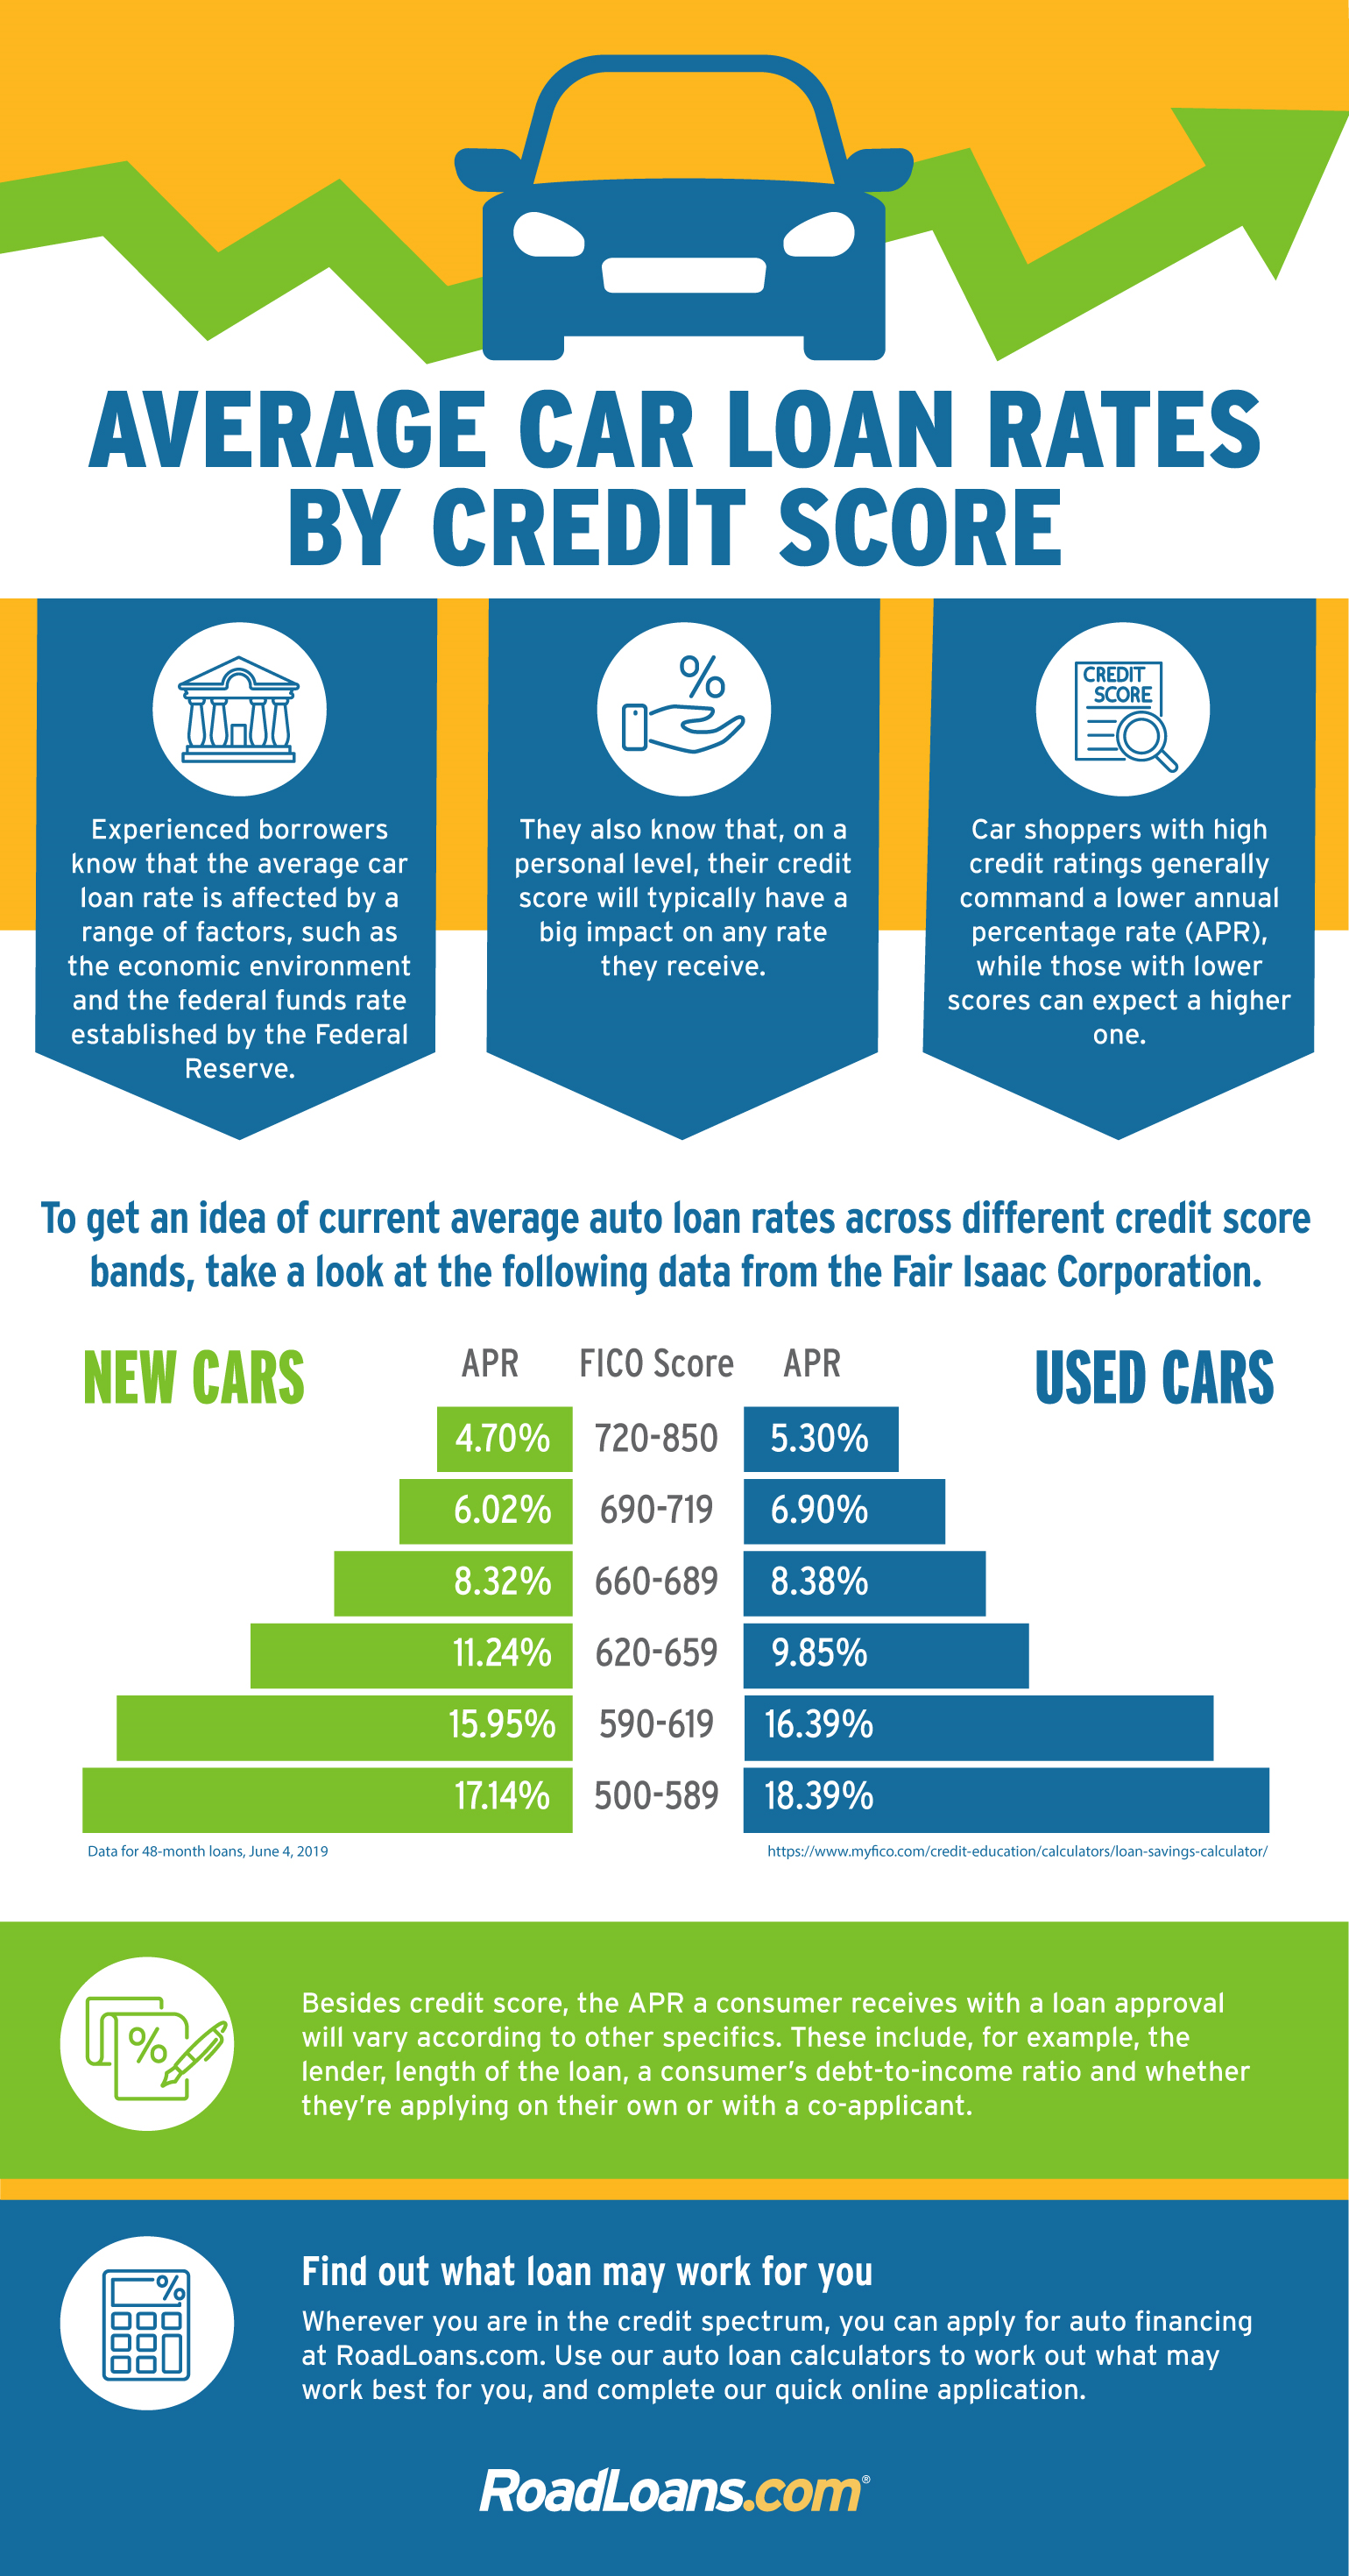 What Kind Of Credit Score To Buy A Car >> Check Out Average Auto Loan Rates According To Credit Score